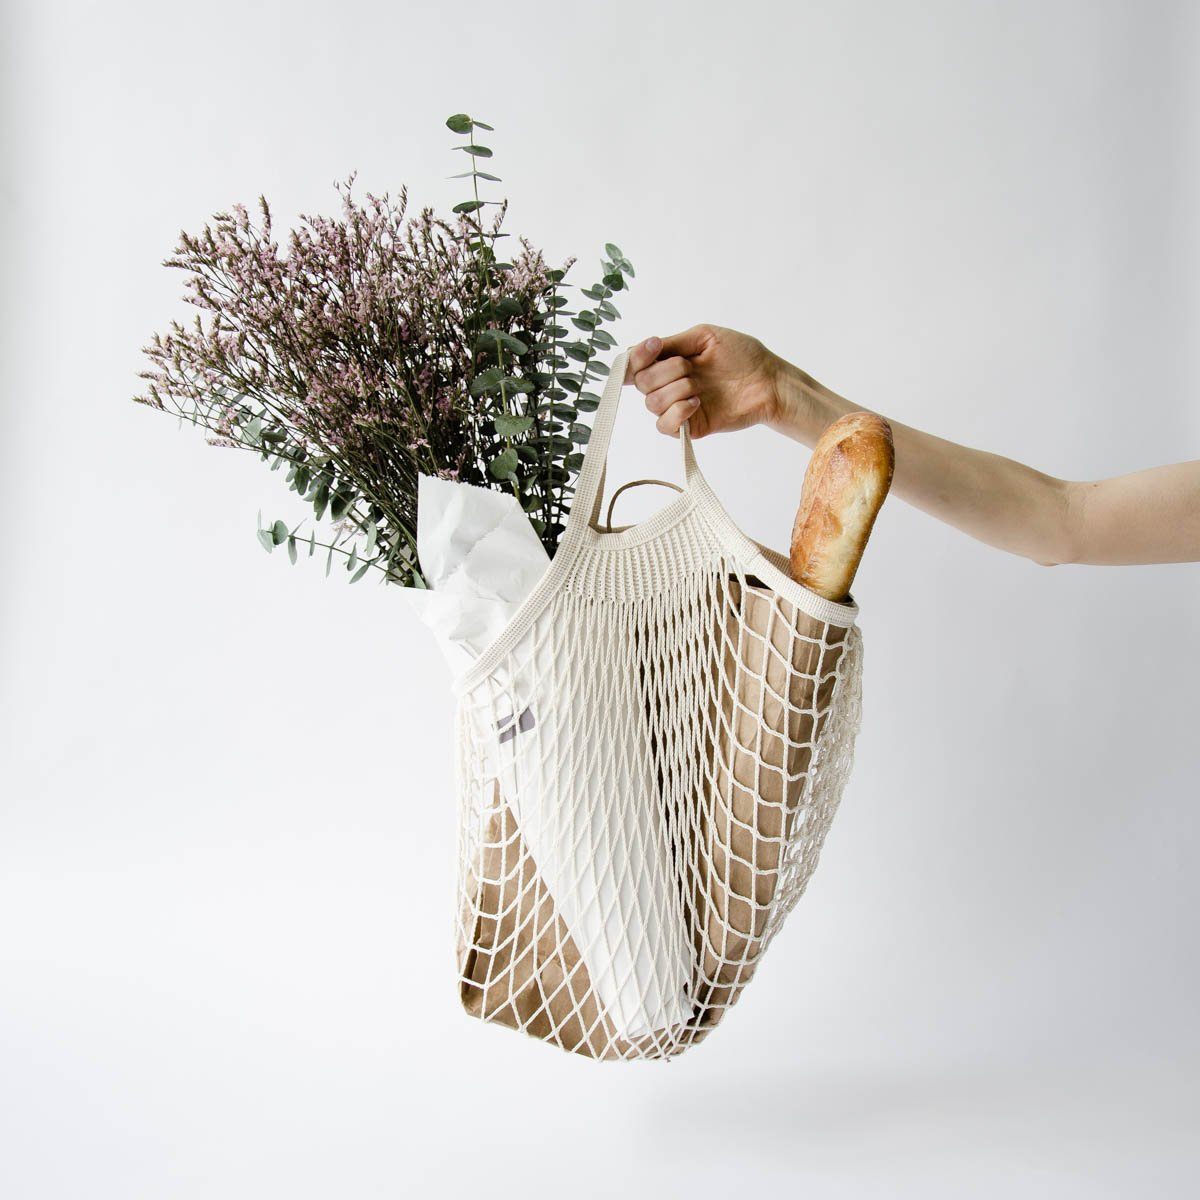 Mesh cotton shopping bags